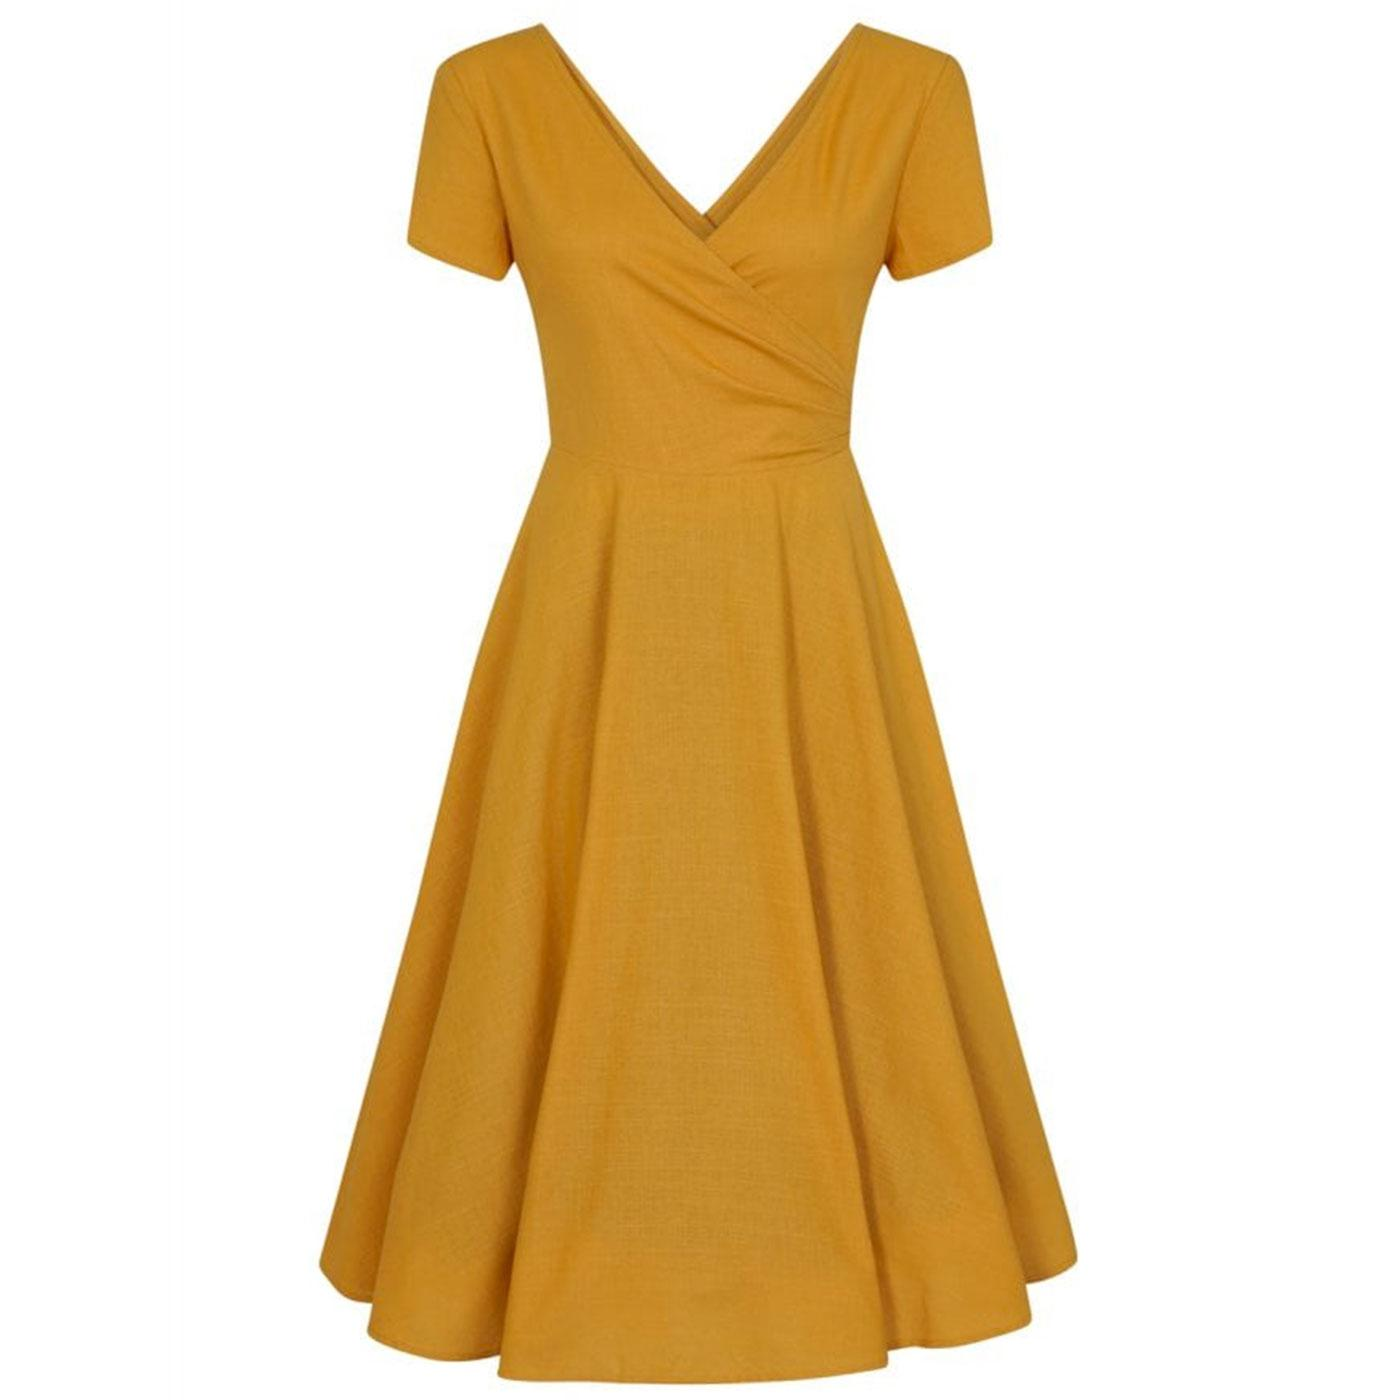 Maria COLLECTIF Retro 50s Wrap Summer Swing Dress